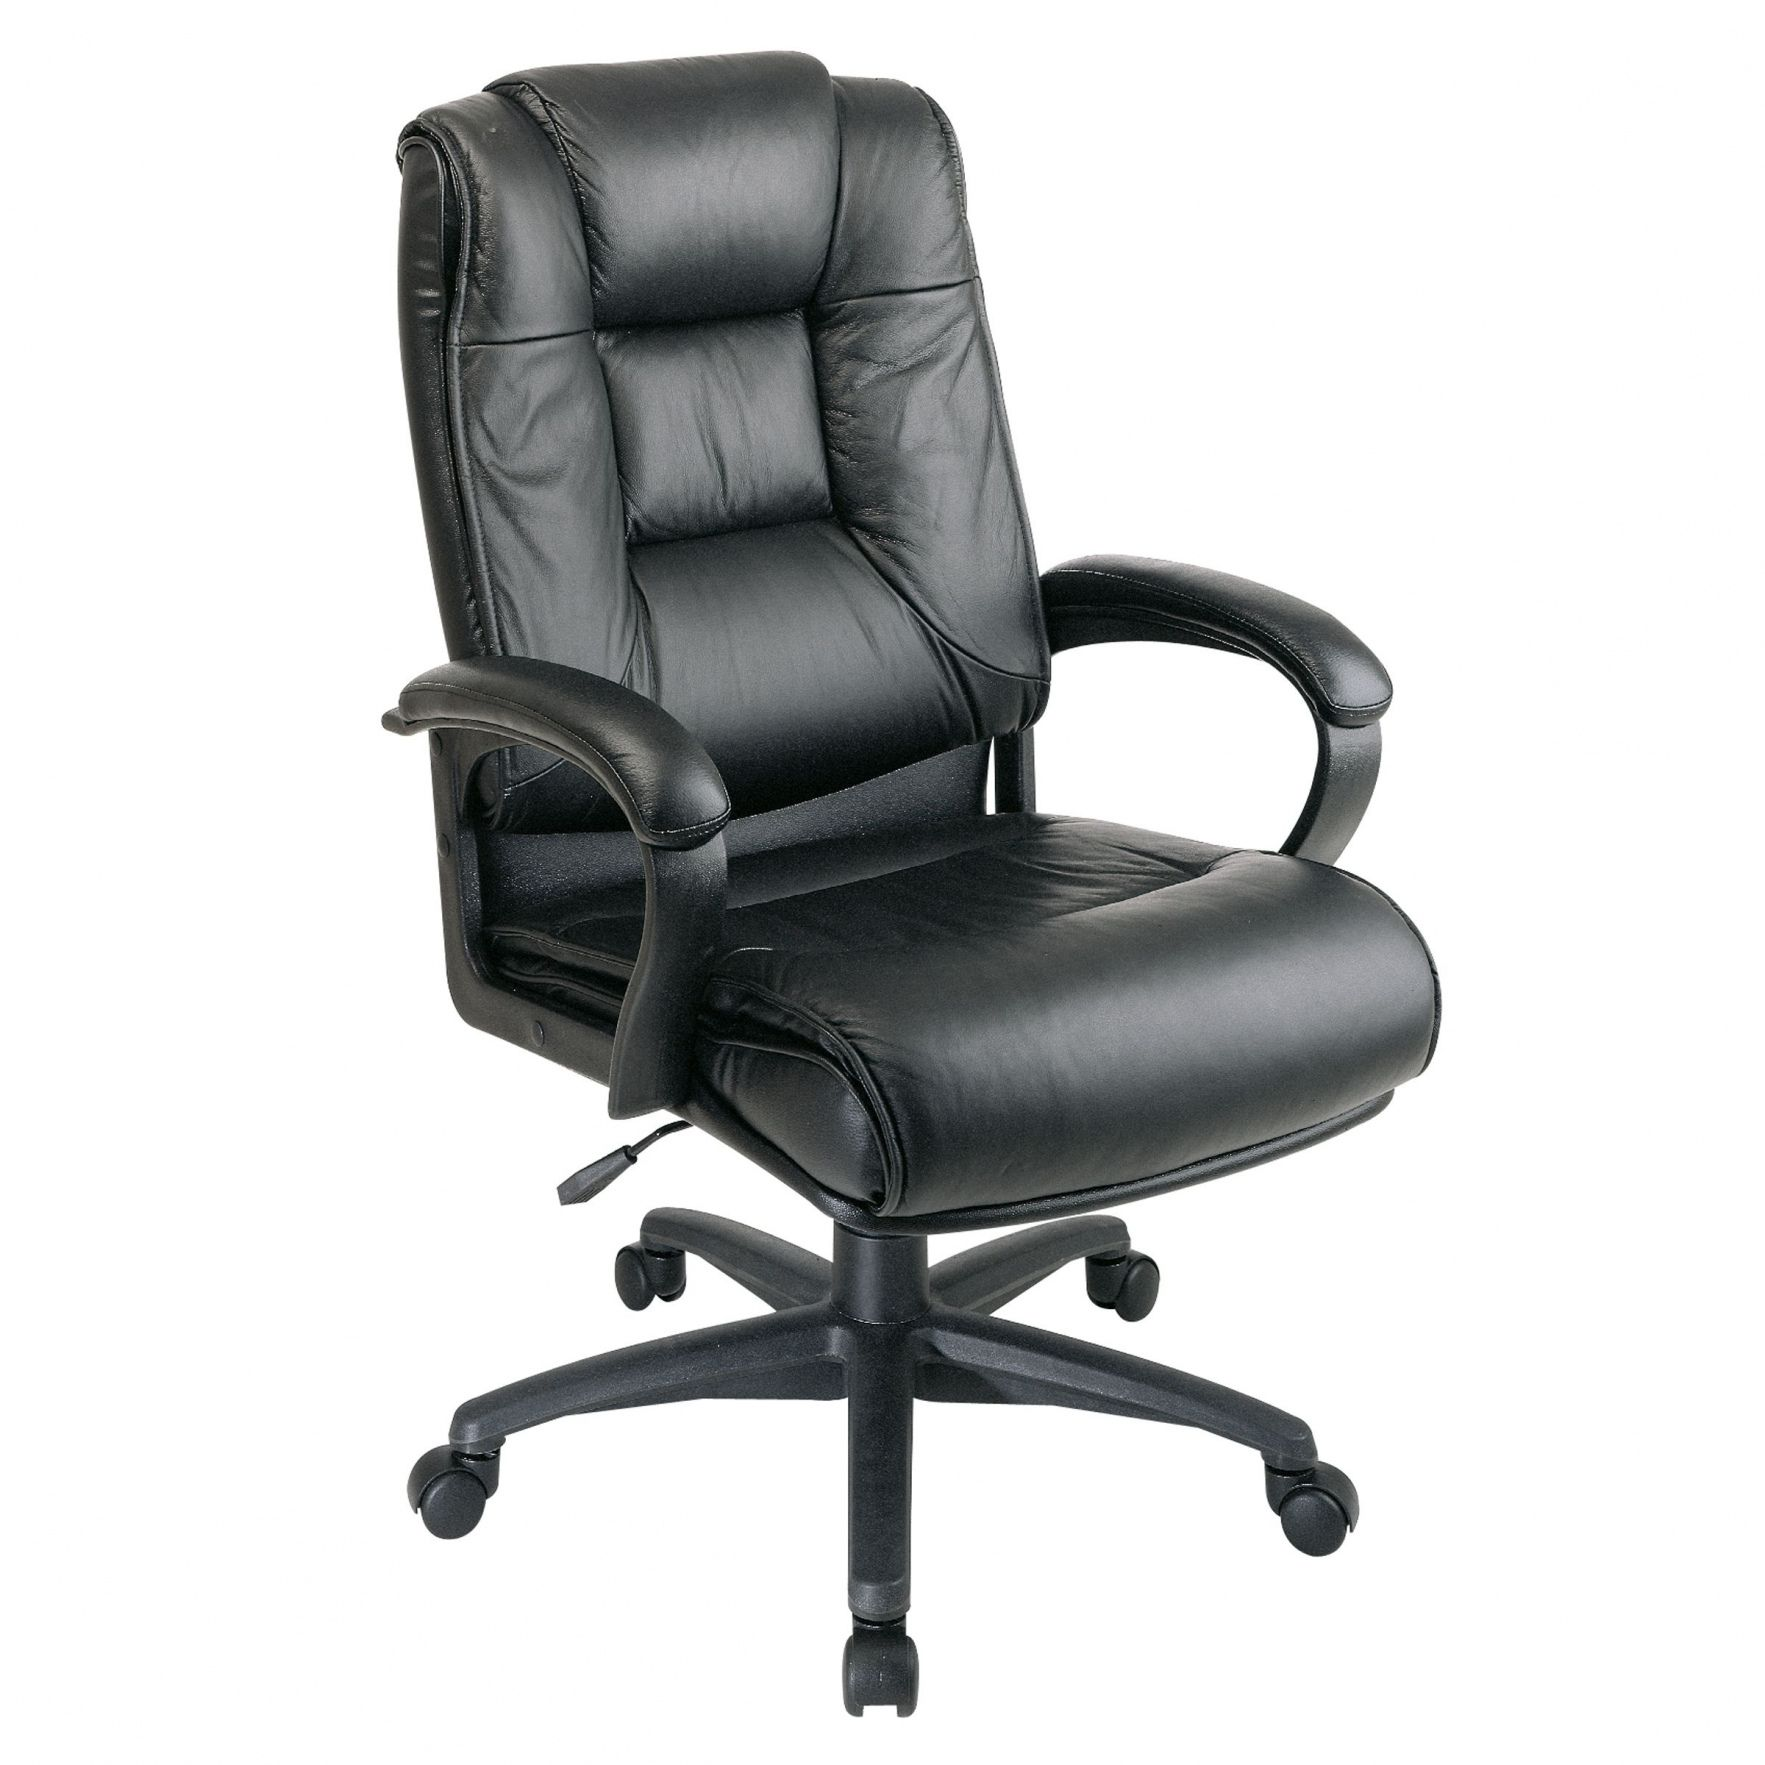 black leather office chair without wheels